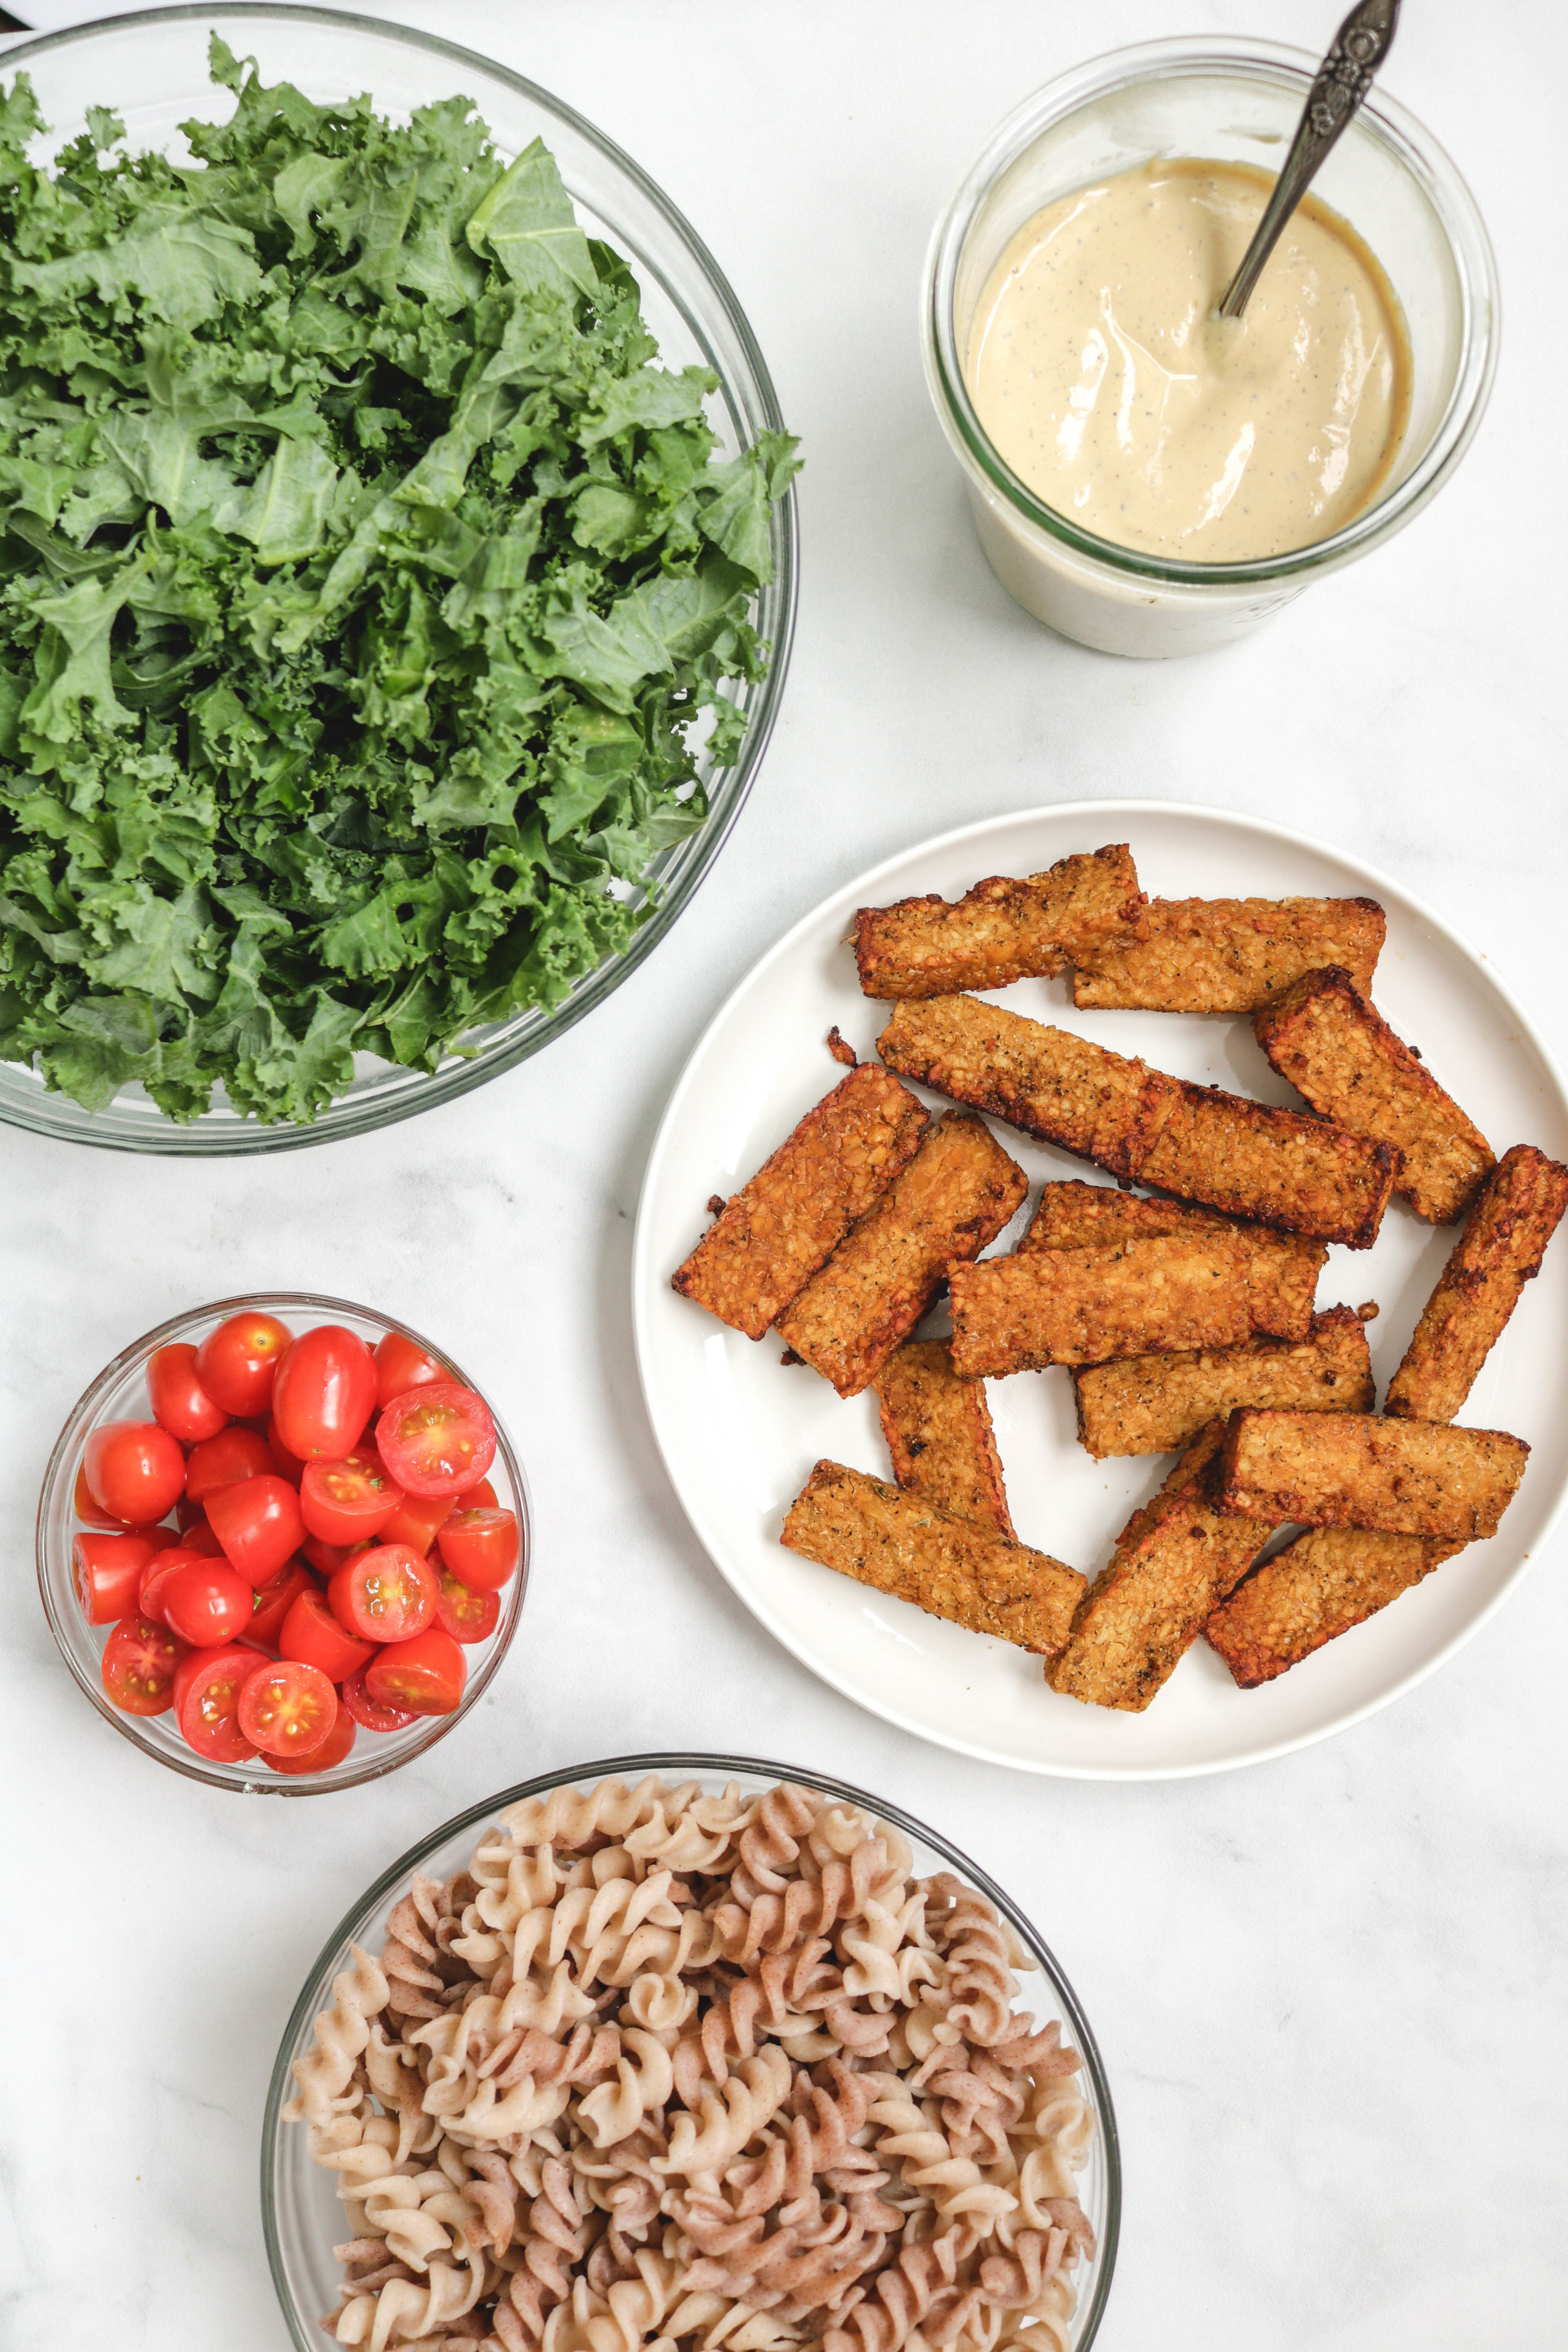 Kale Miso Caesar Pasta Salad with Smoky Tempeh ingredients